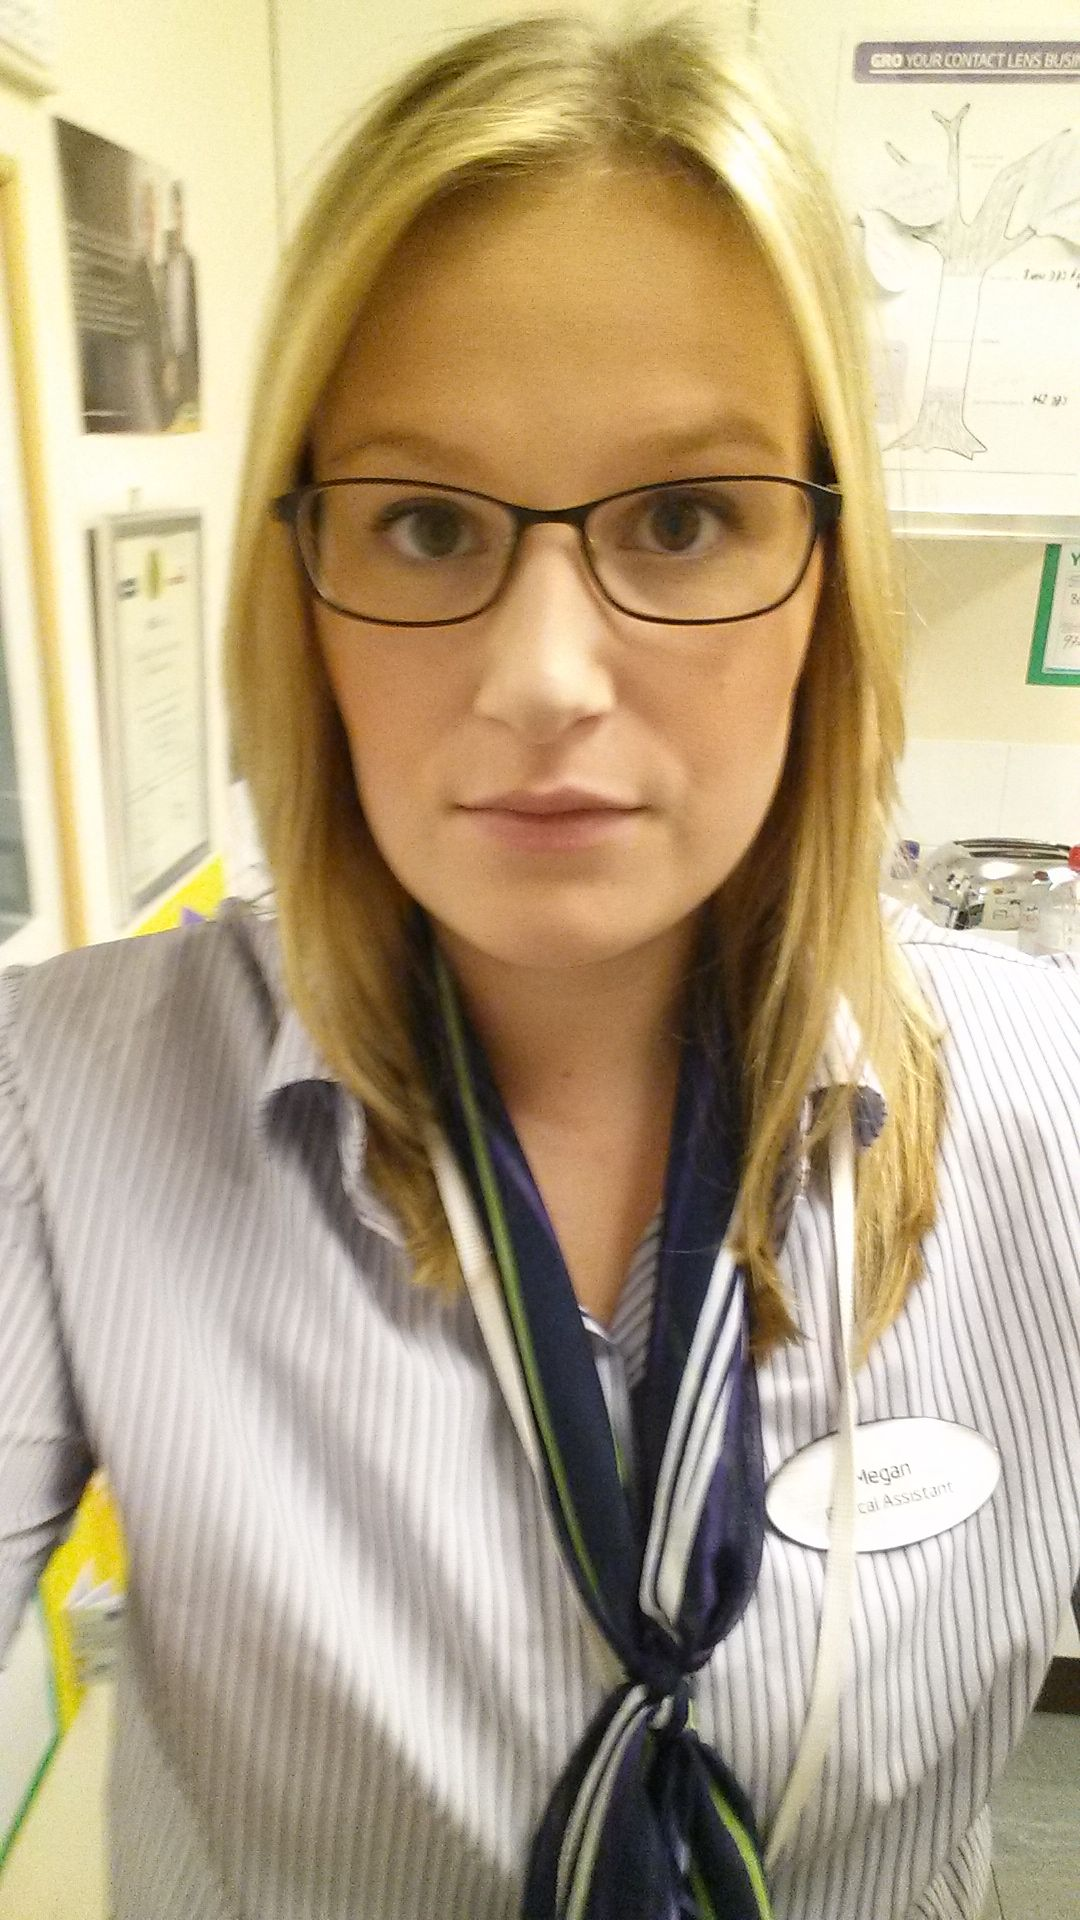 Megan Watson, optical assistant at Specsavers Seaford